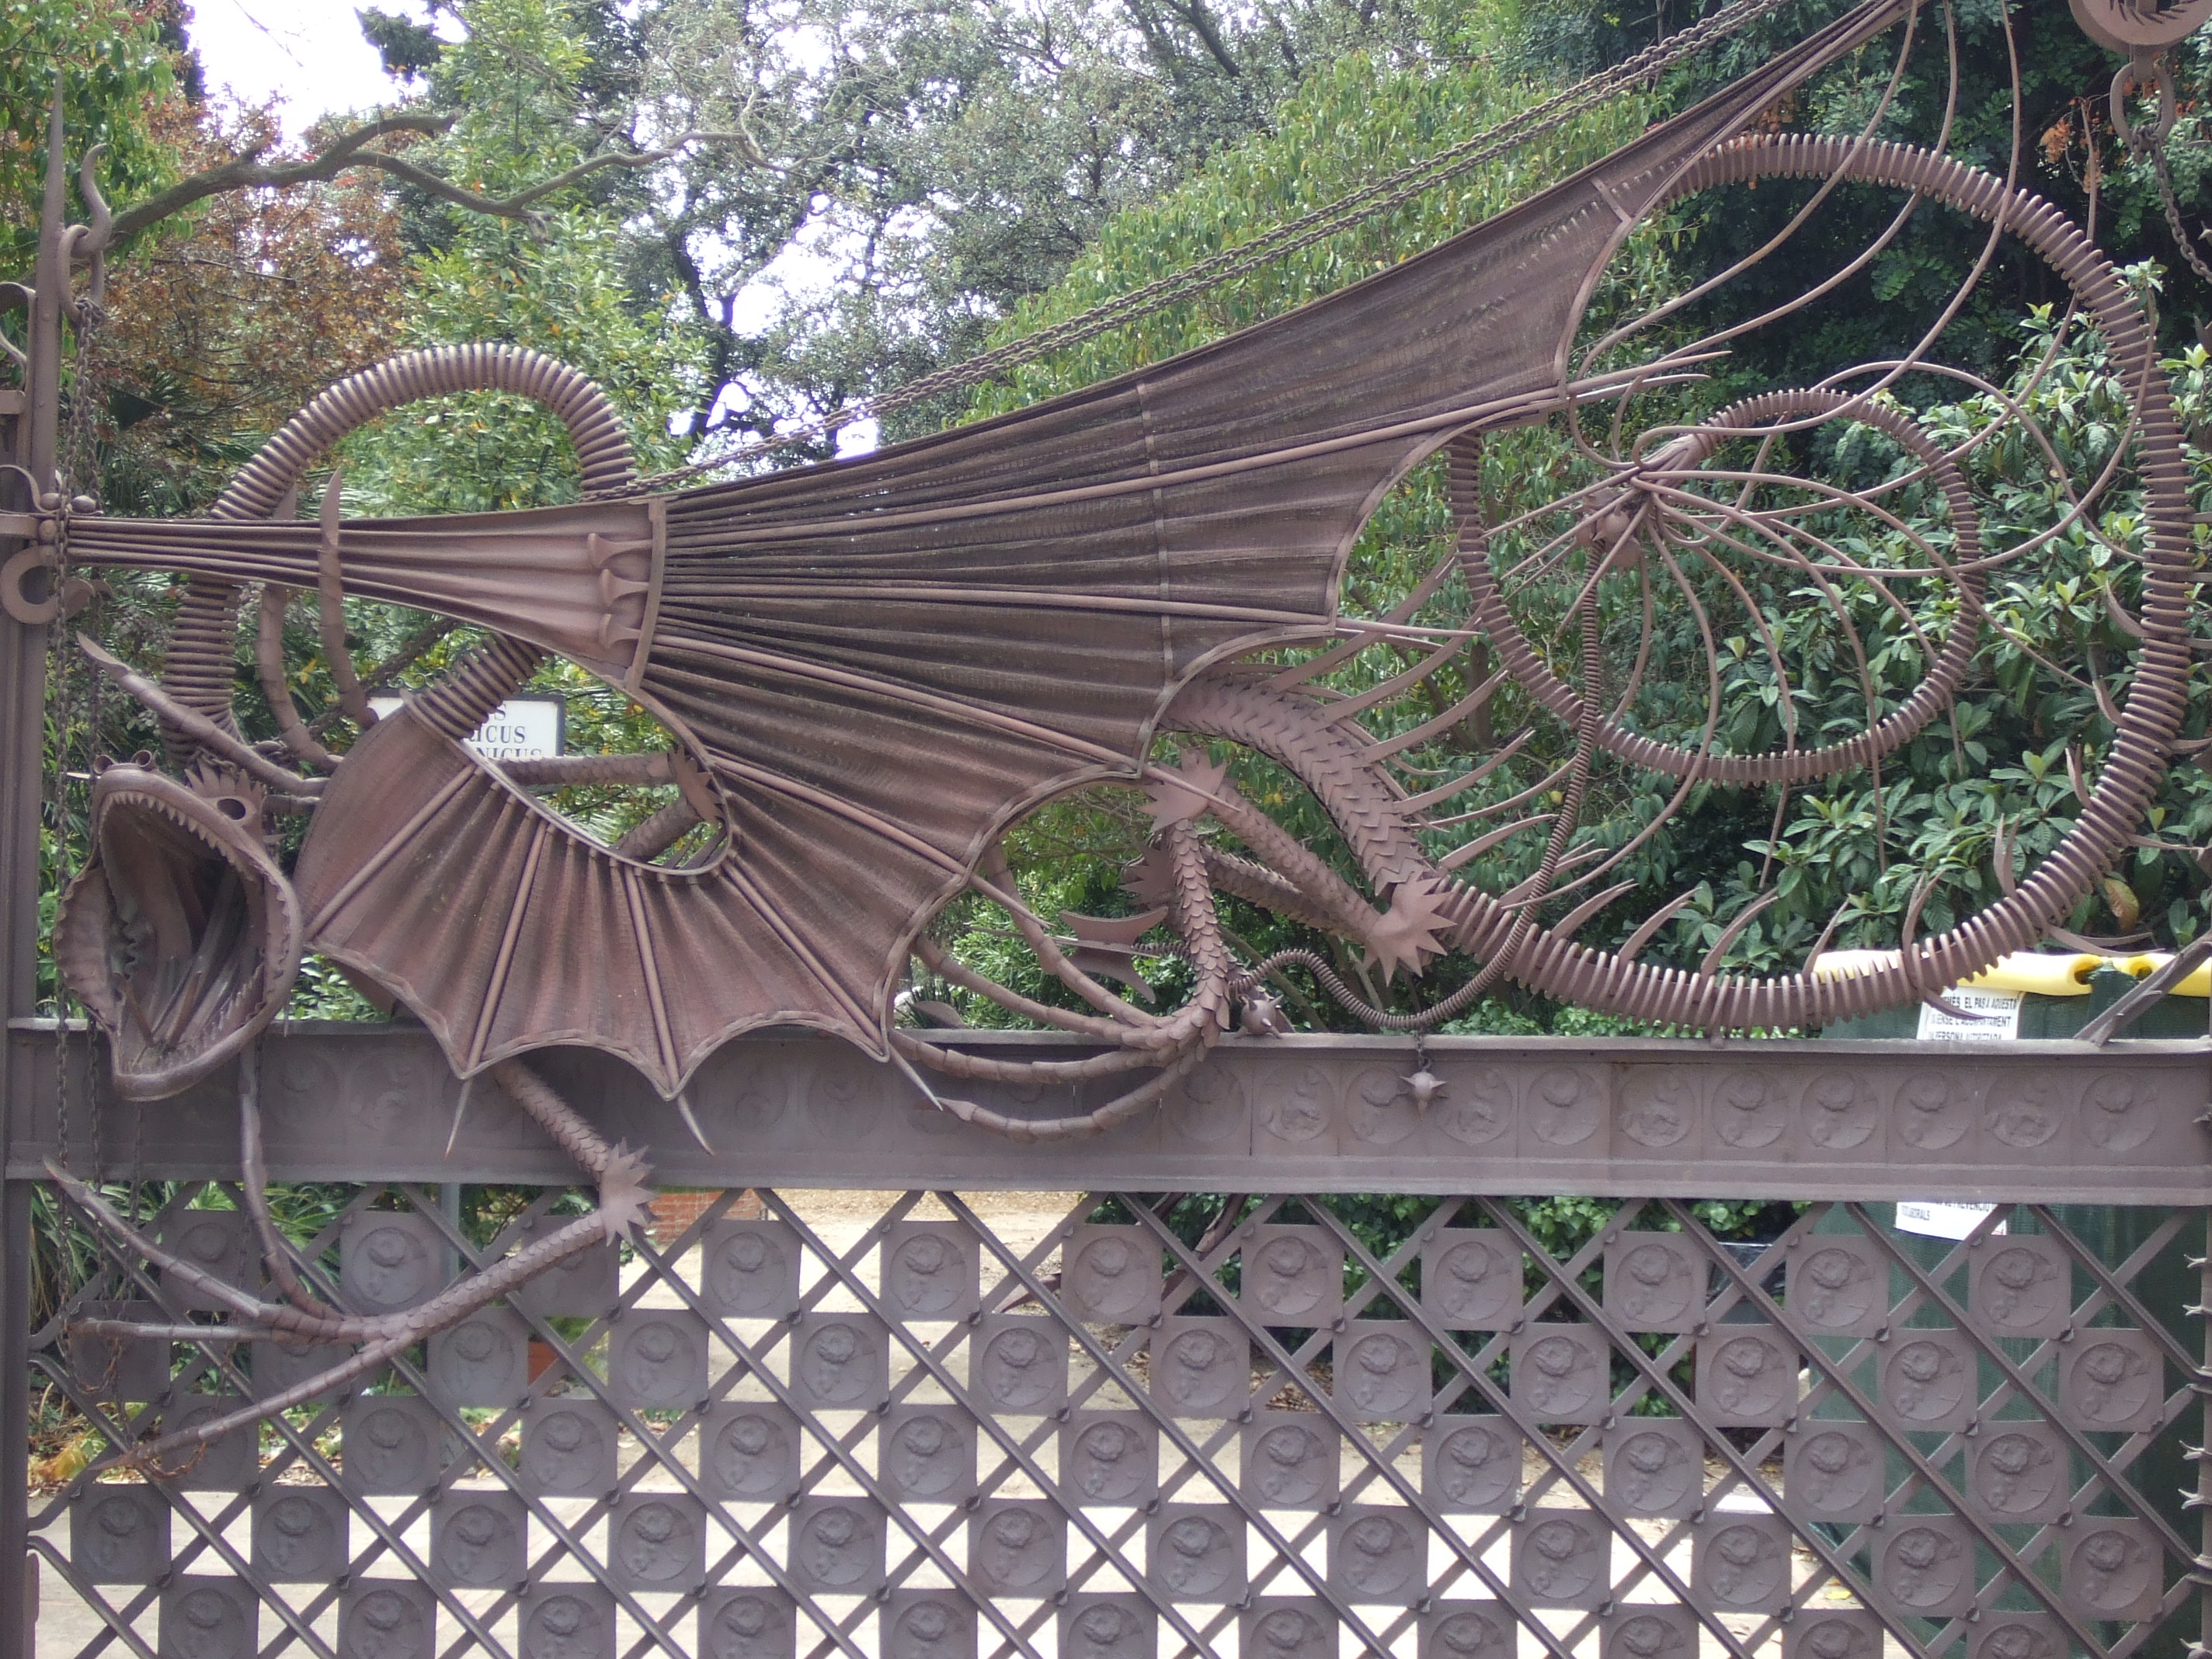 Cool dragon fence on a Gaudi-designed property in Barcelona.